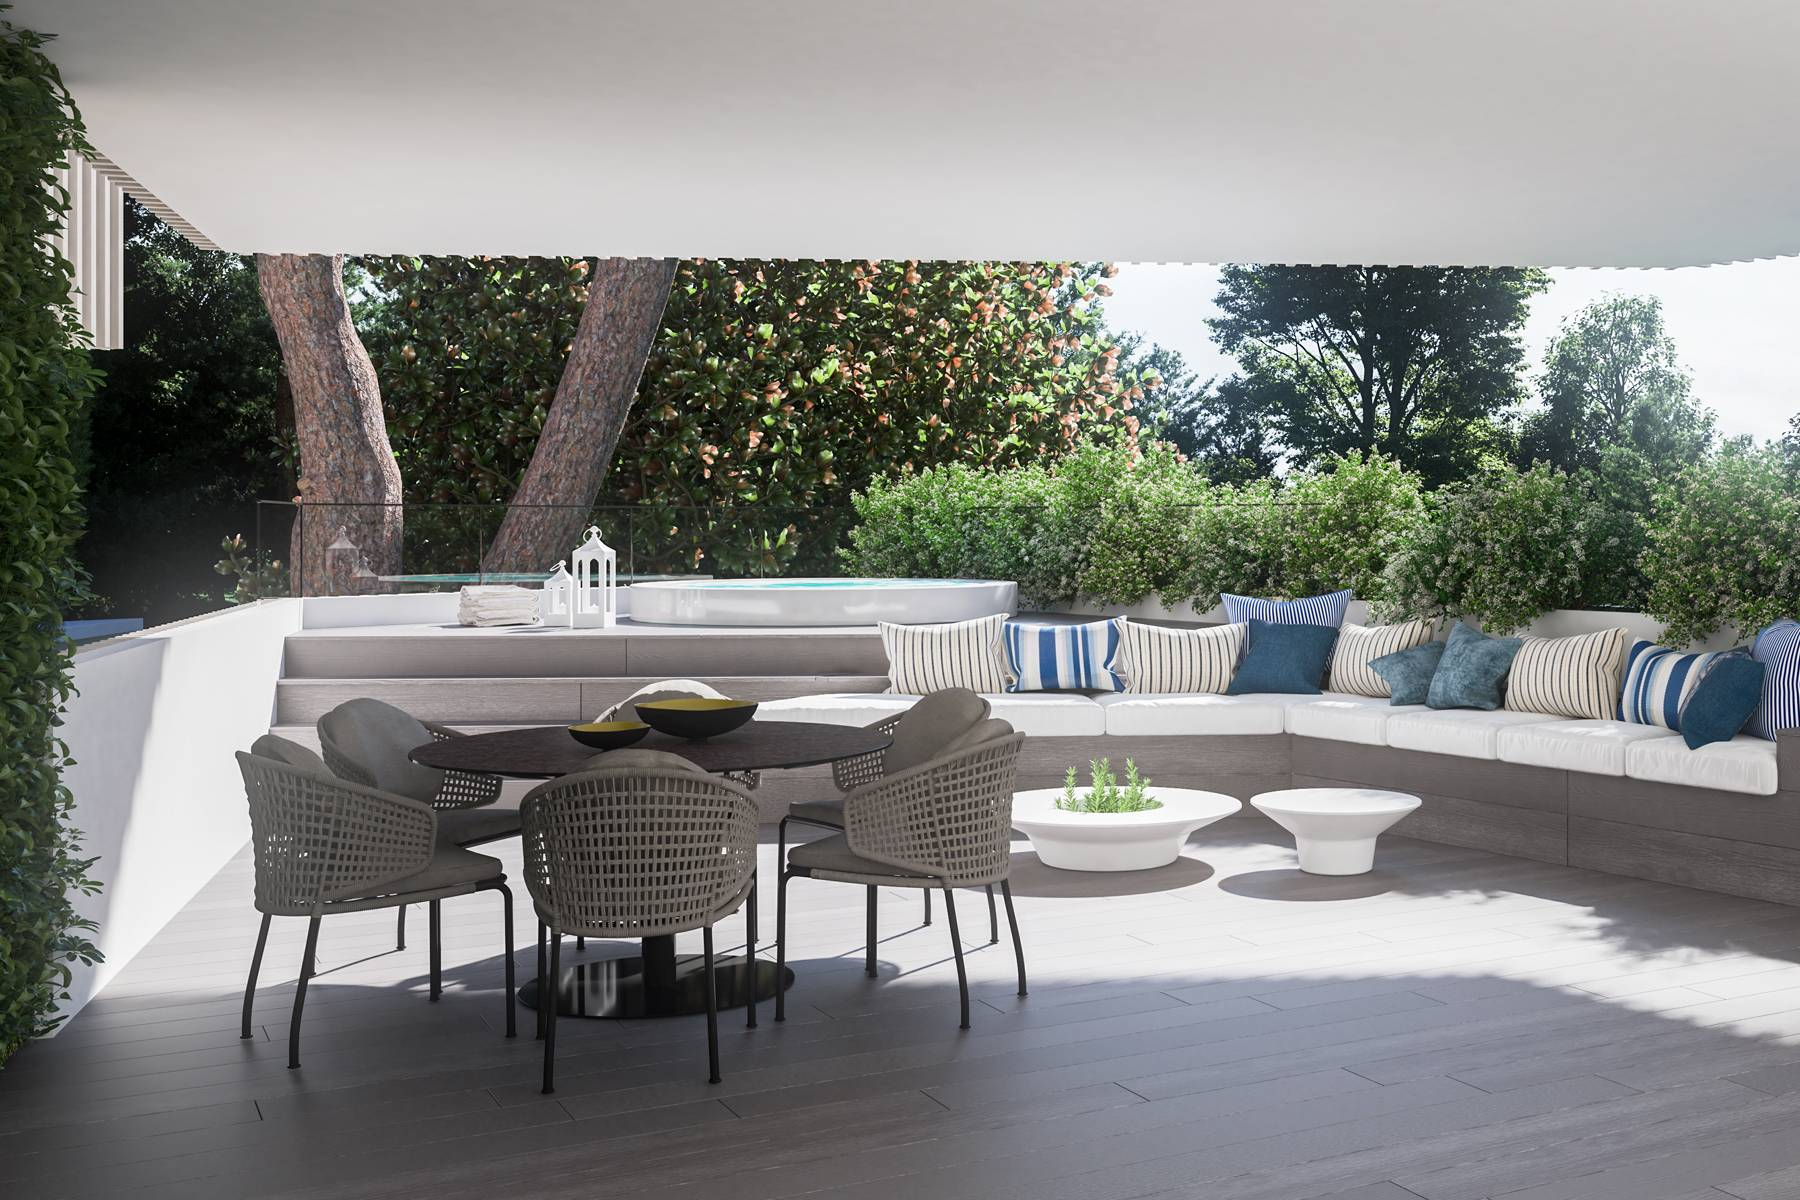 Camilluccia 535: the quiet of the countryside in the heart of Rome - First floor - 5